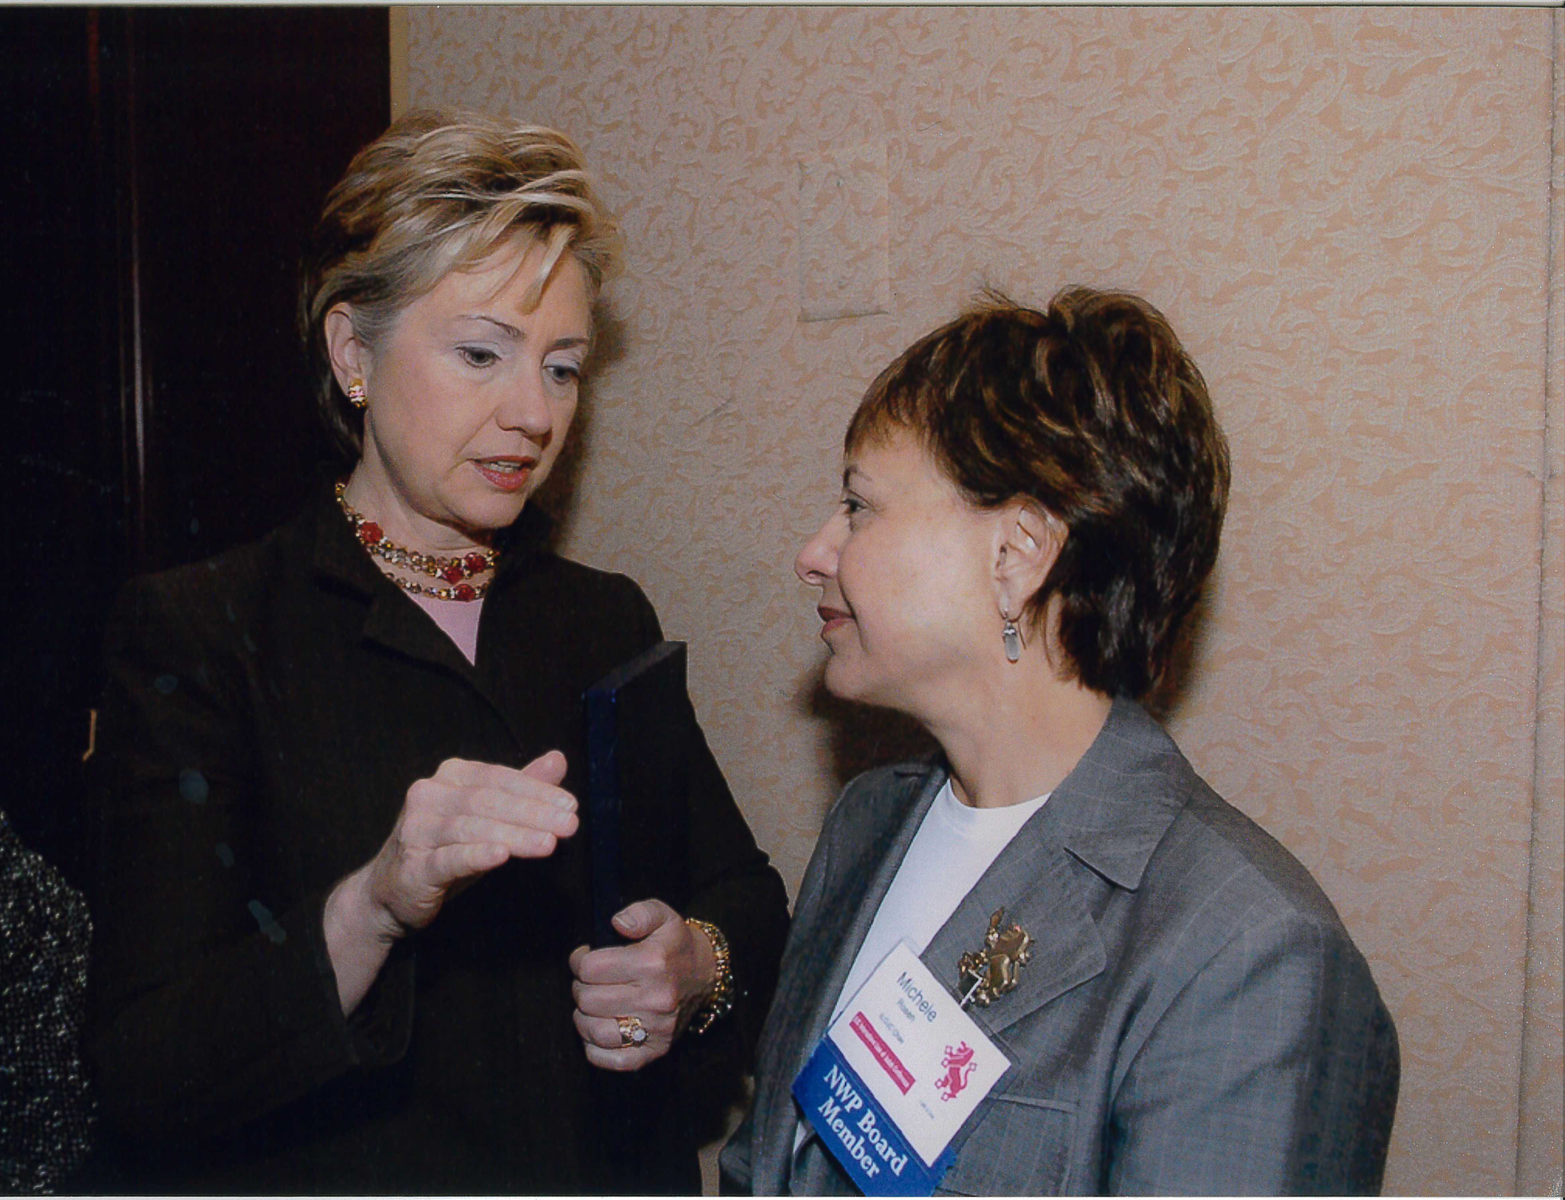 Hilary Clinton and Michele Rosen.